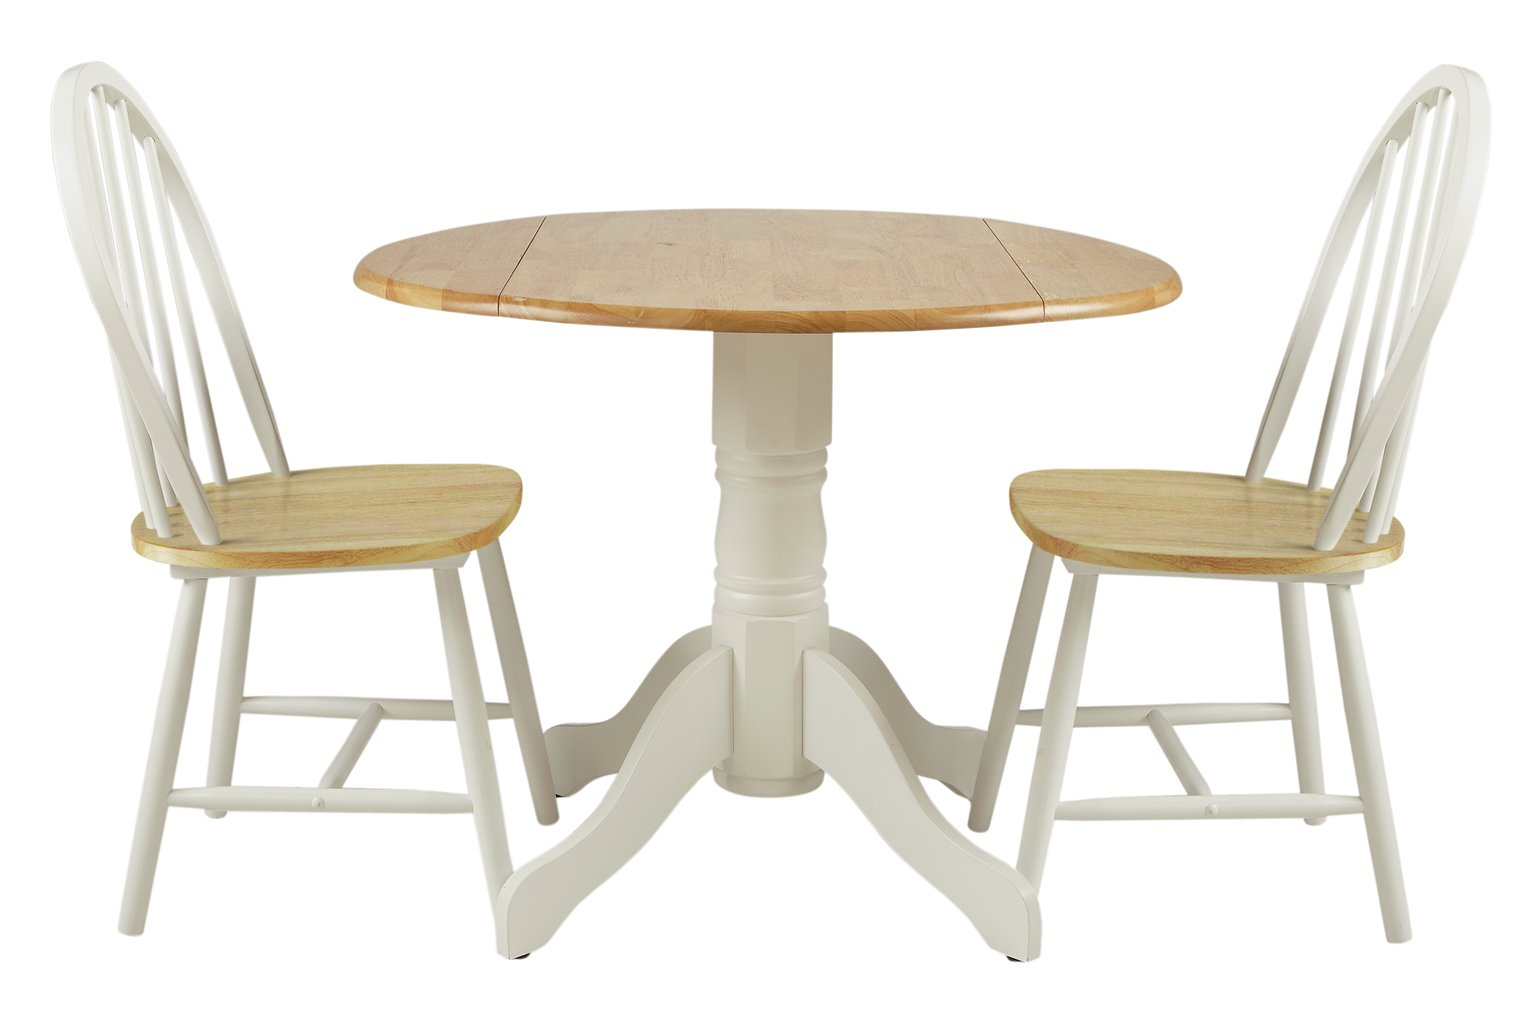 Small Drop Leaf Table With 2 Chairs Collection Kentucky Drop Leaf Table And 2 Chairs Gay